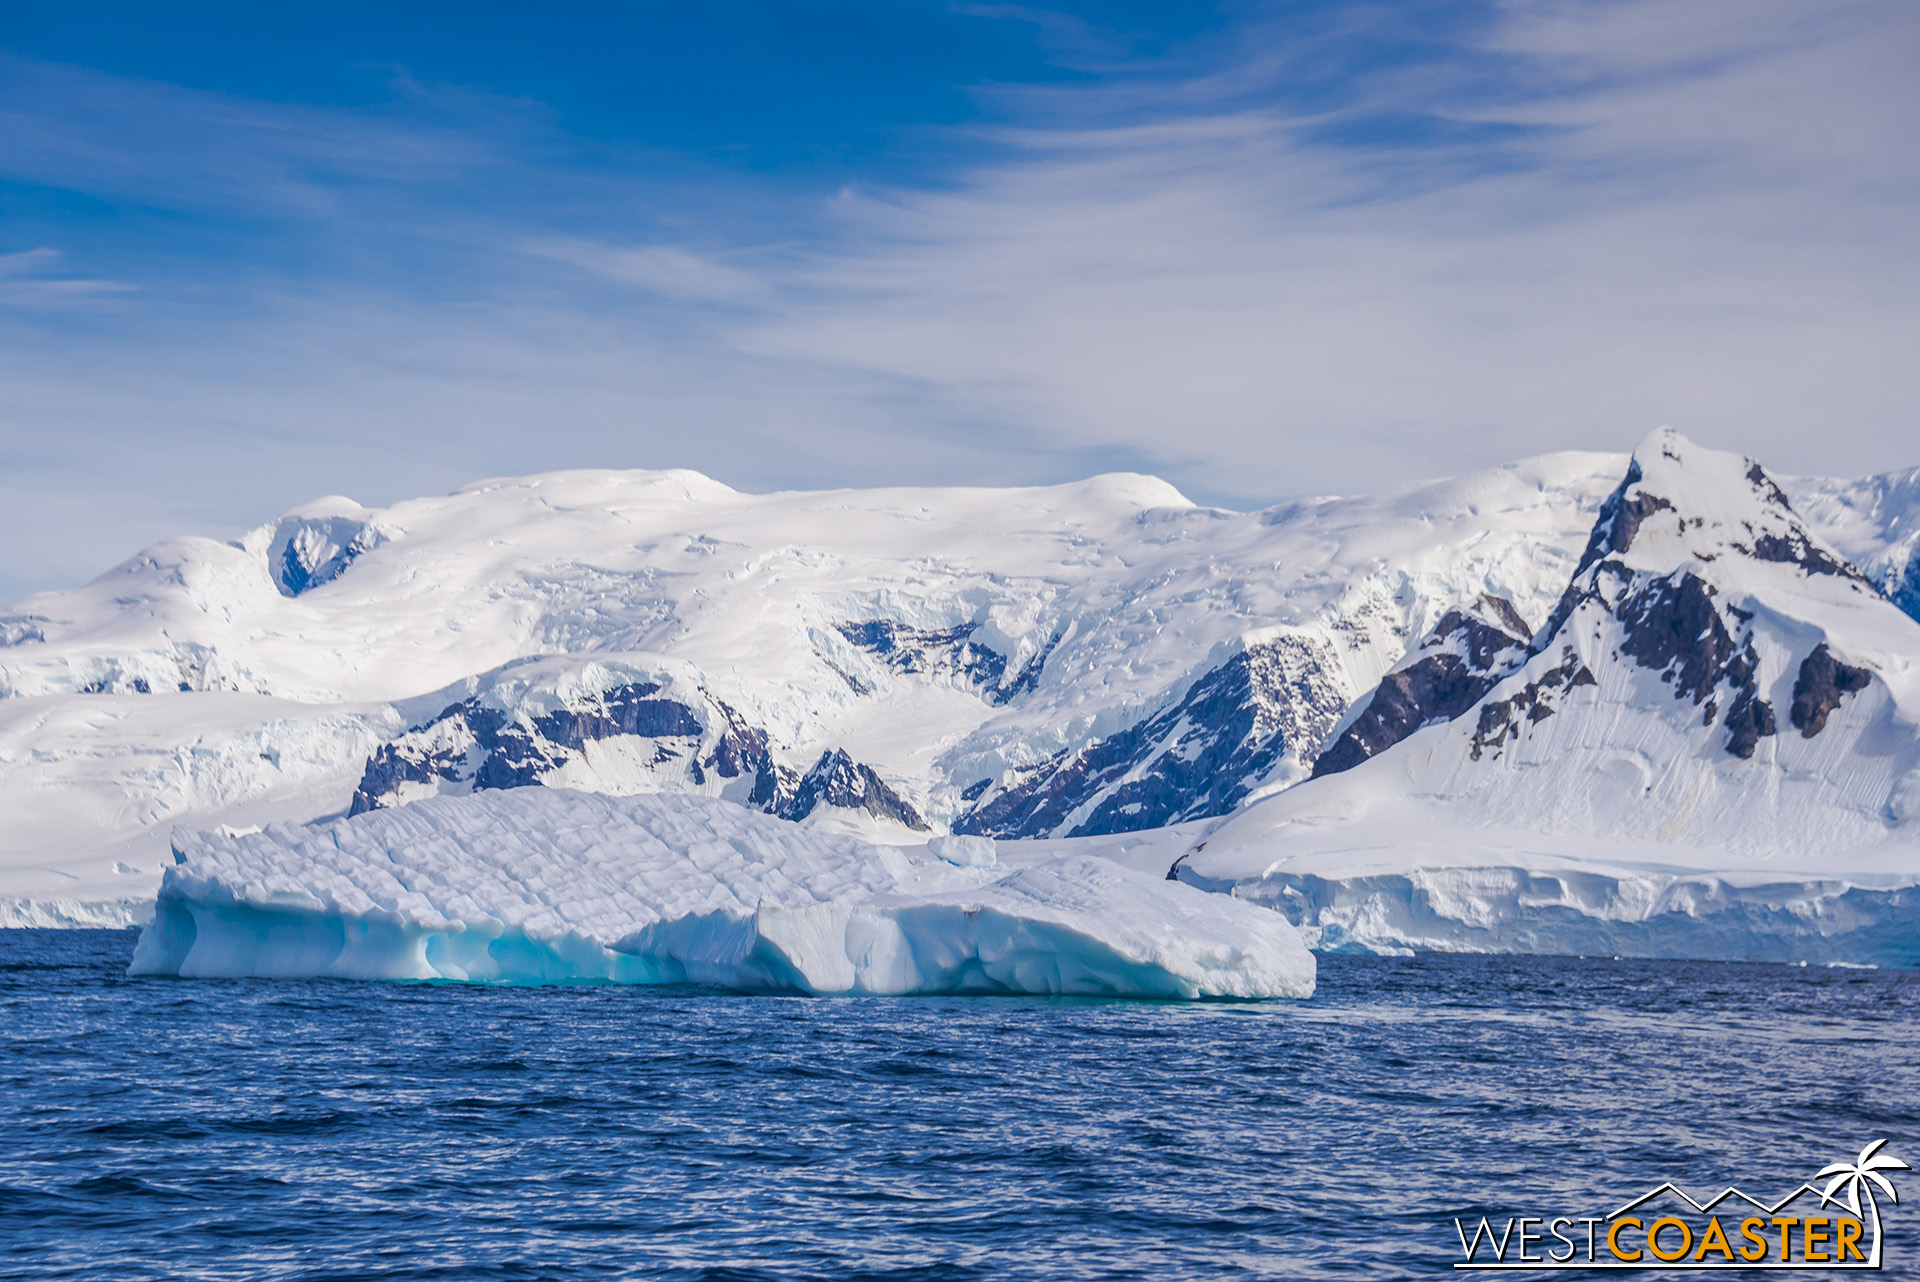 Snowcapped mountains and glaciers from a backdrop in front of large icebergs that are nonetheless dwarfed by their surroundings.